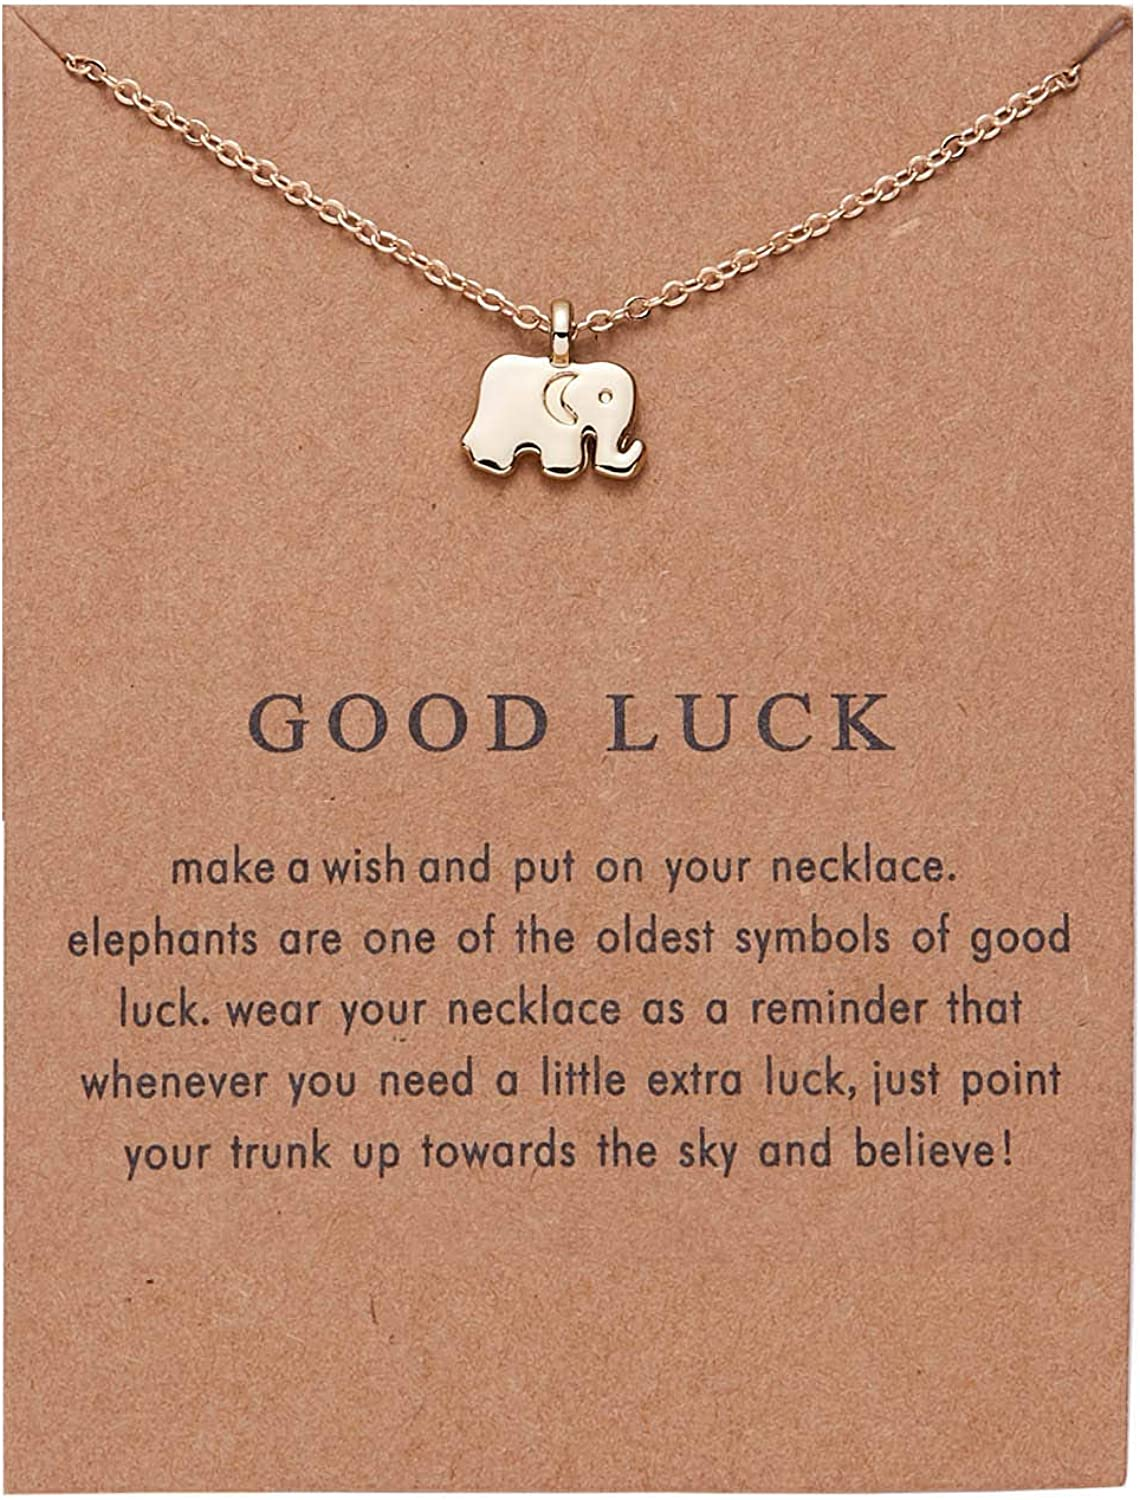 Friendship Butterfly Necklace Elephant Dragonfly Pendant Chain Necklace with Message Card for Women Girls